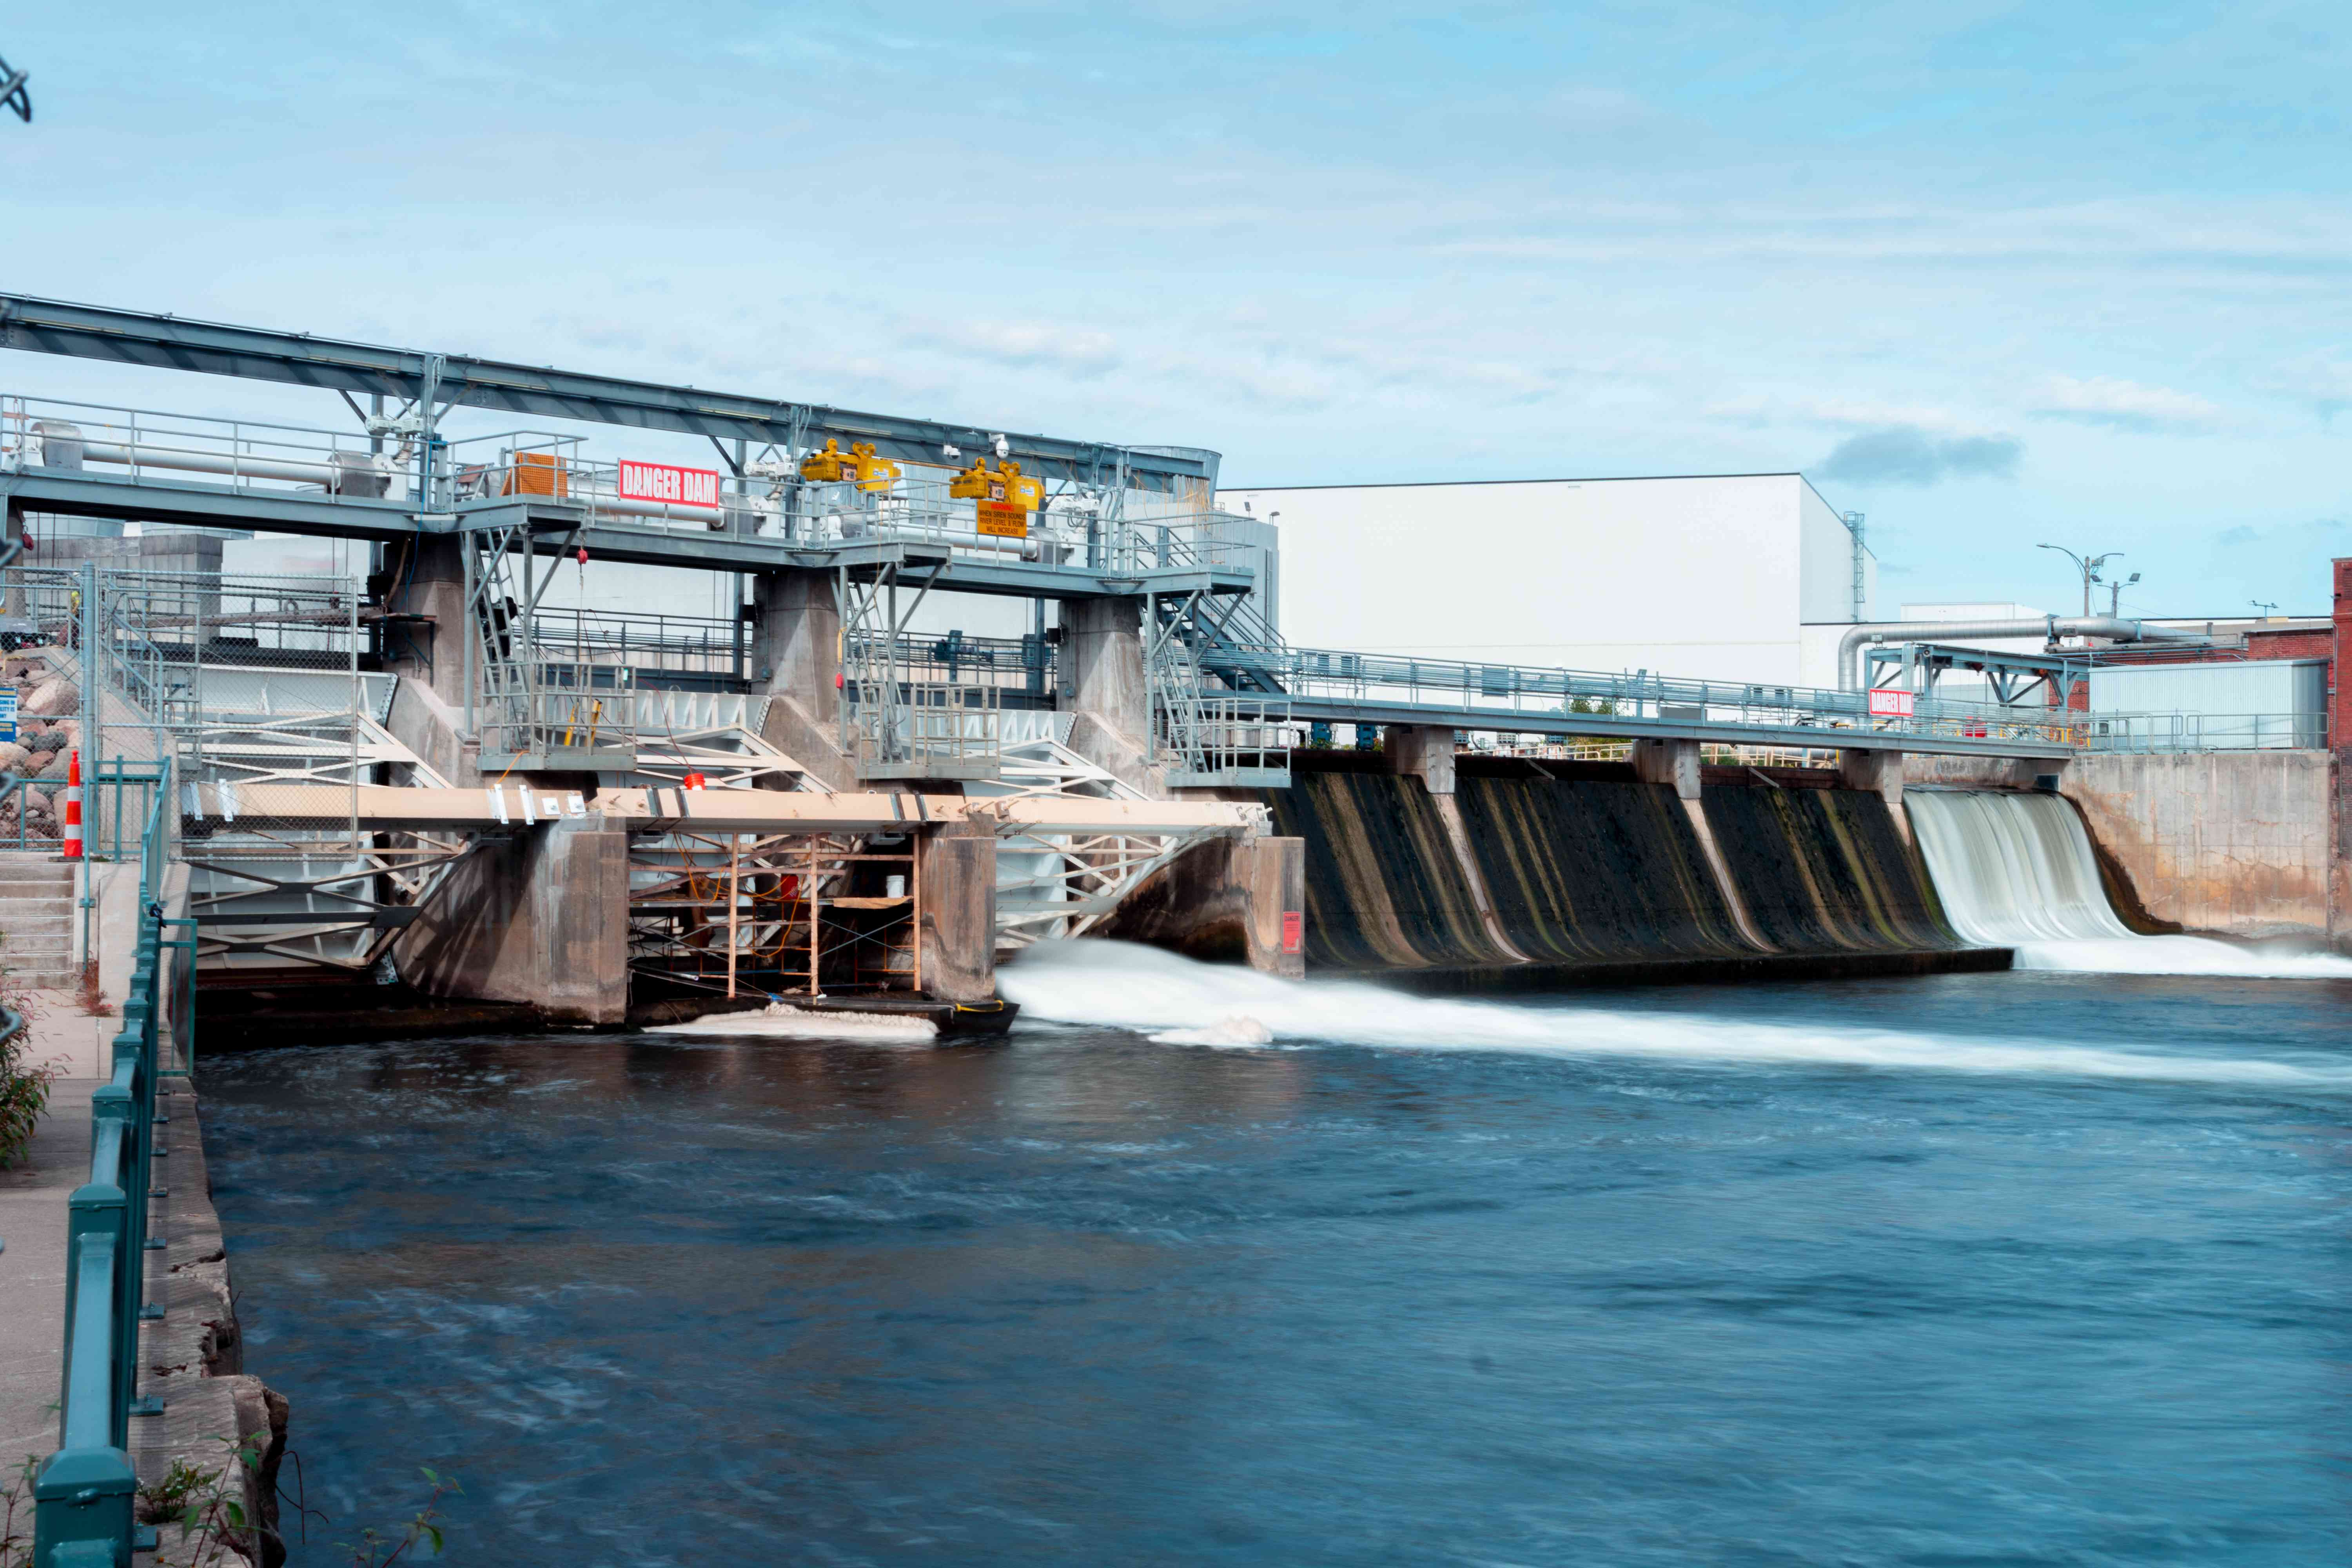 long shot of hydropower plant with dam